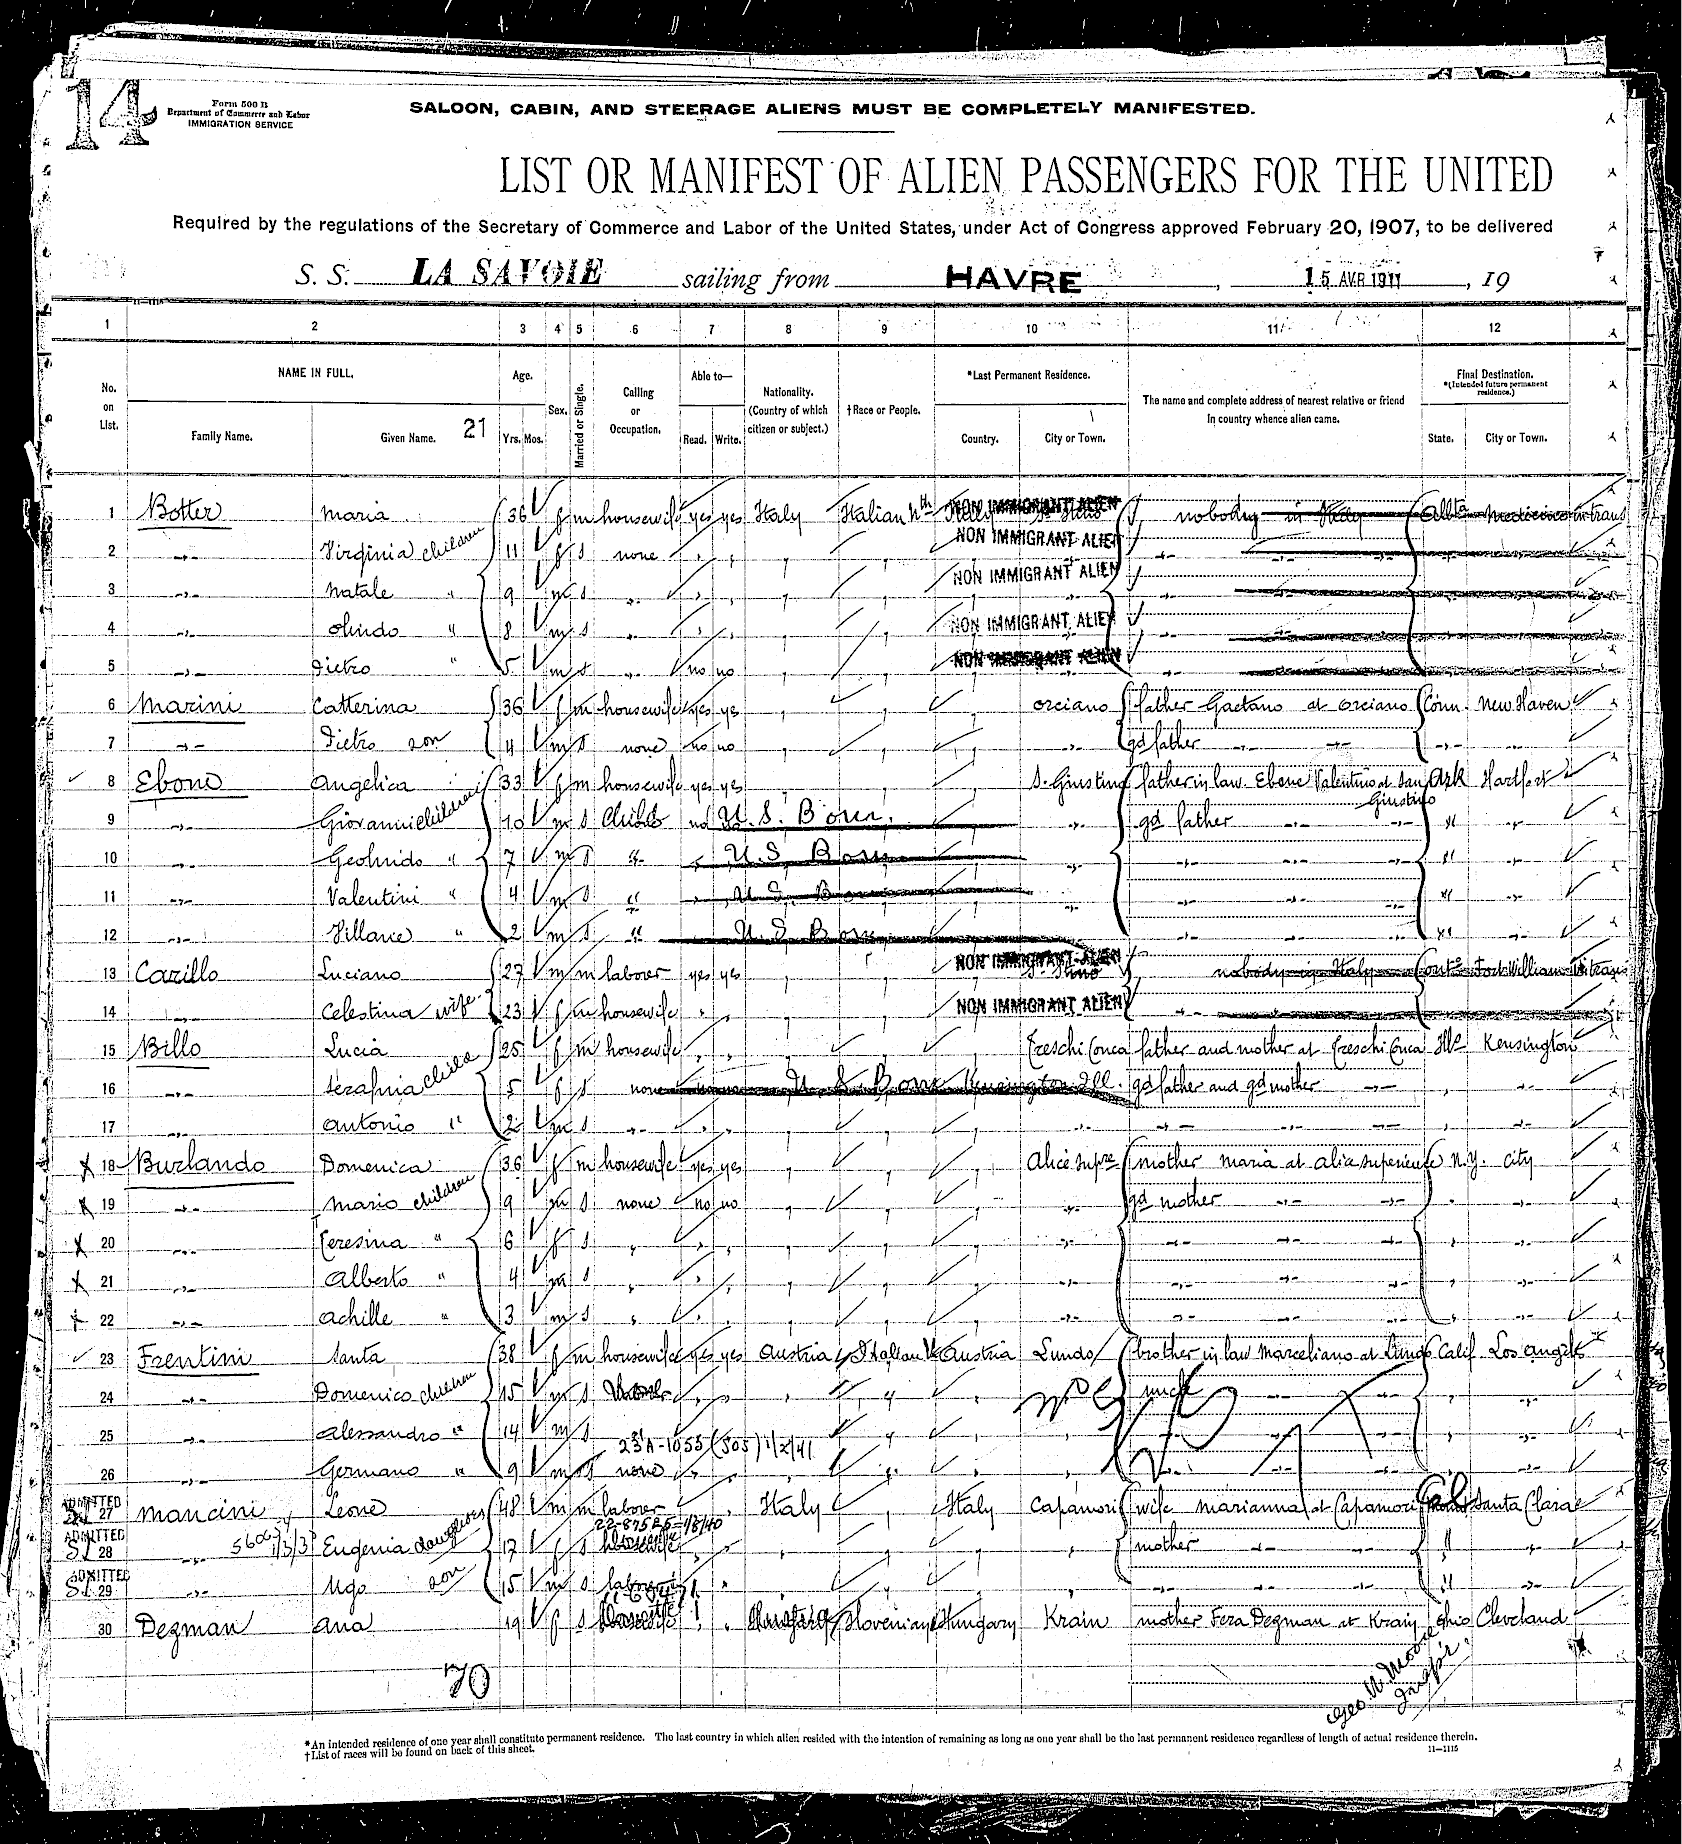 Ellis Island immigration record showing the Mancinis' admittance to the U.S.